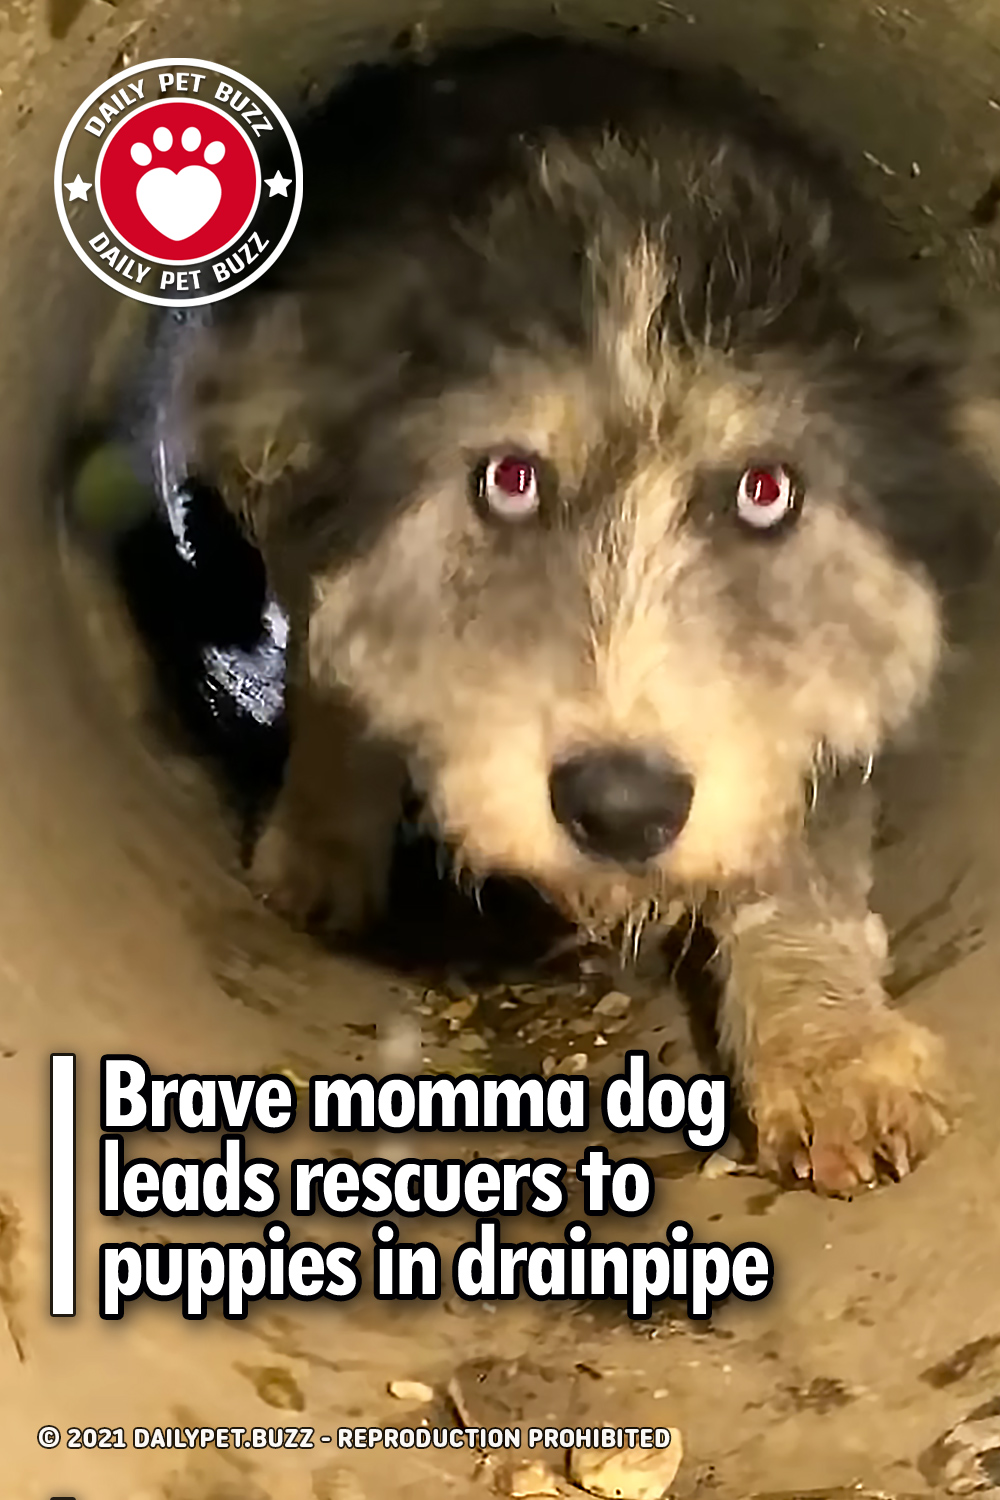 Brave momma dog leads rescuers to puppies in drainpipe